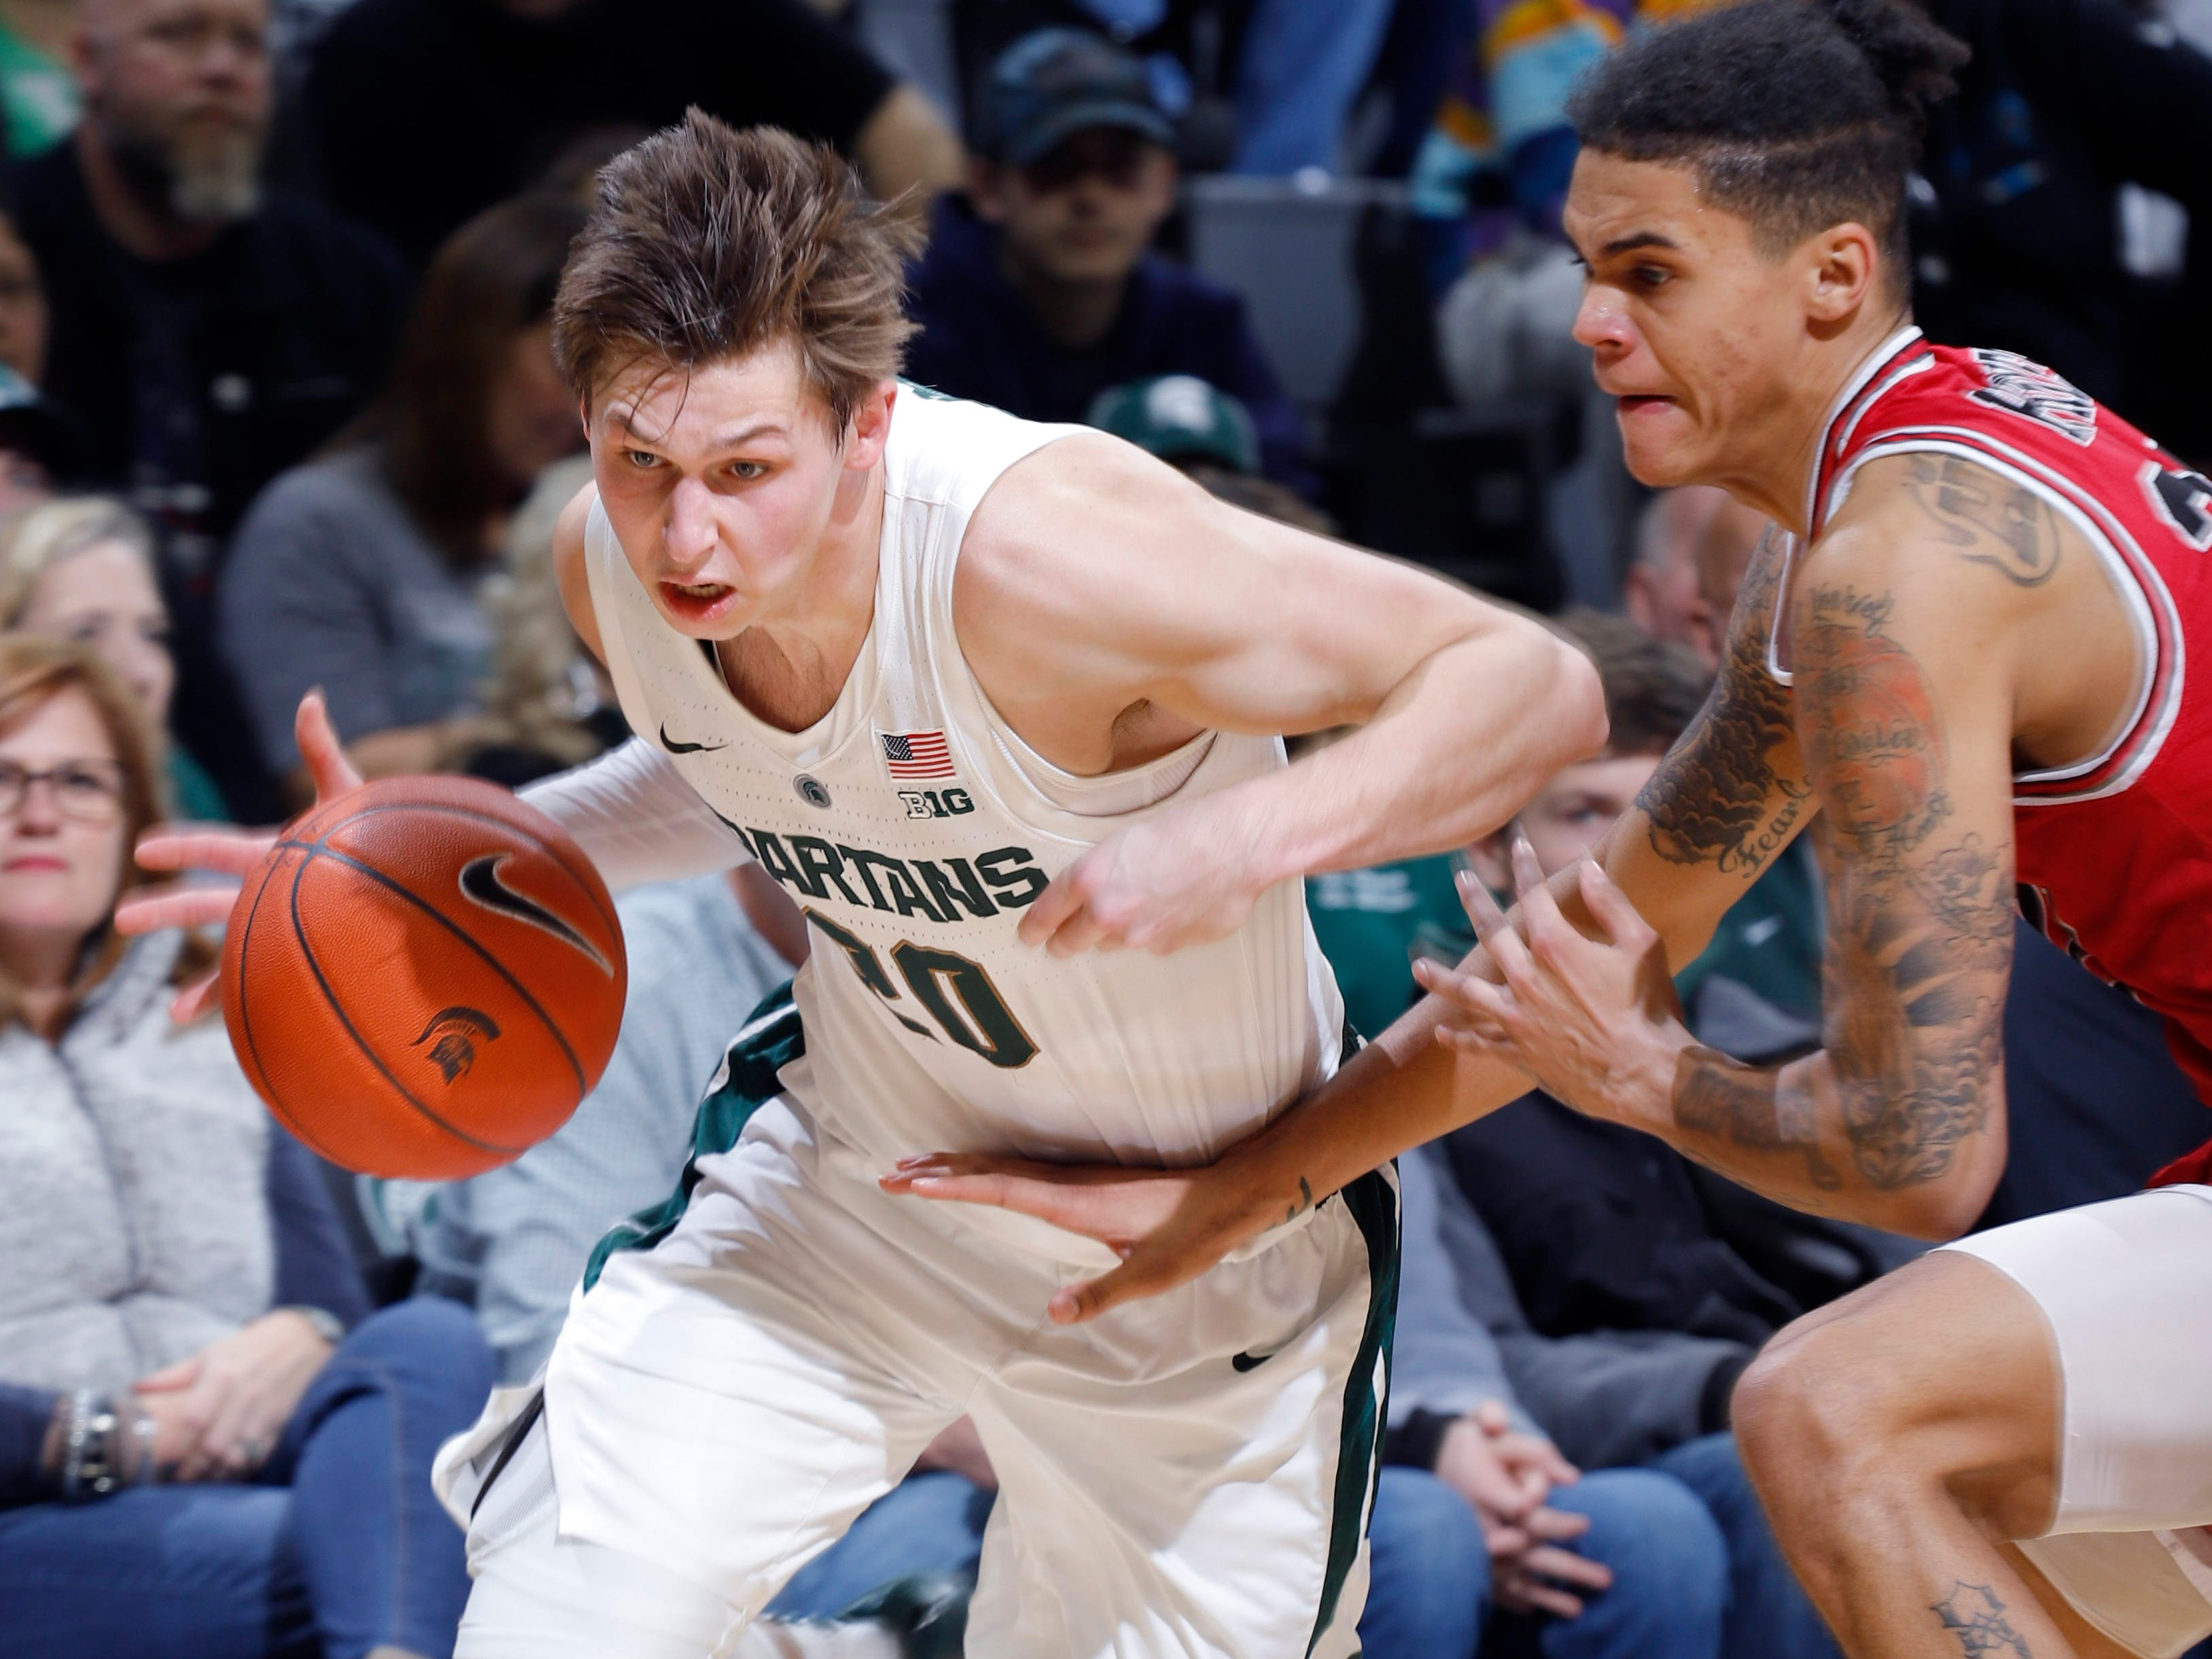 Michigan State's Matt McQuaid, left, drives against Northern Illinois' Rod Henry-Hayes, Saturday, Dec. 29, 2018, in East Lansing, Mich.